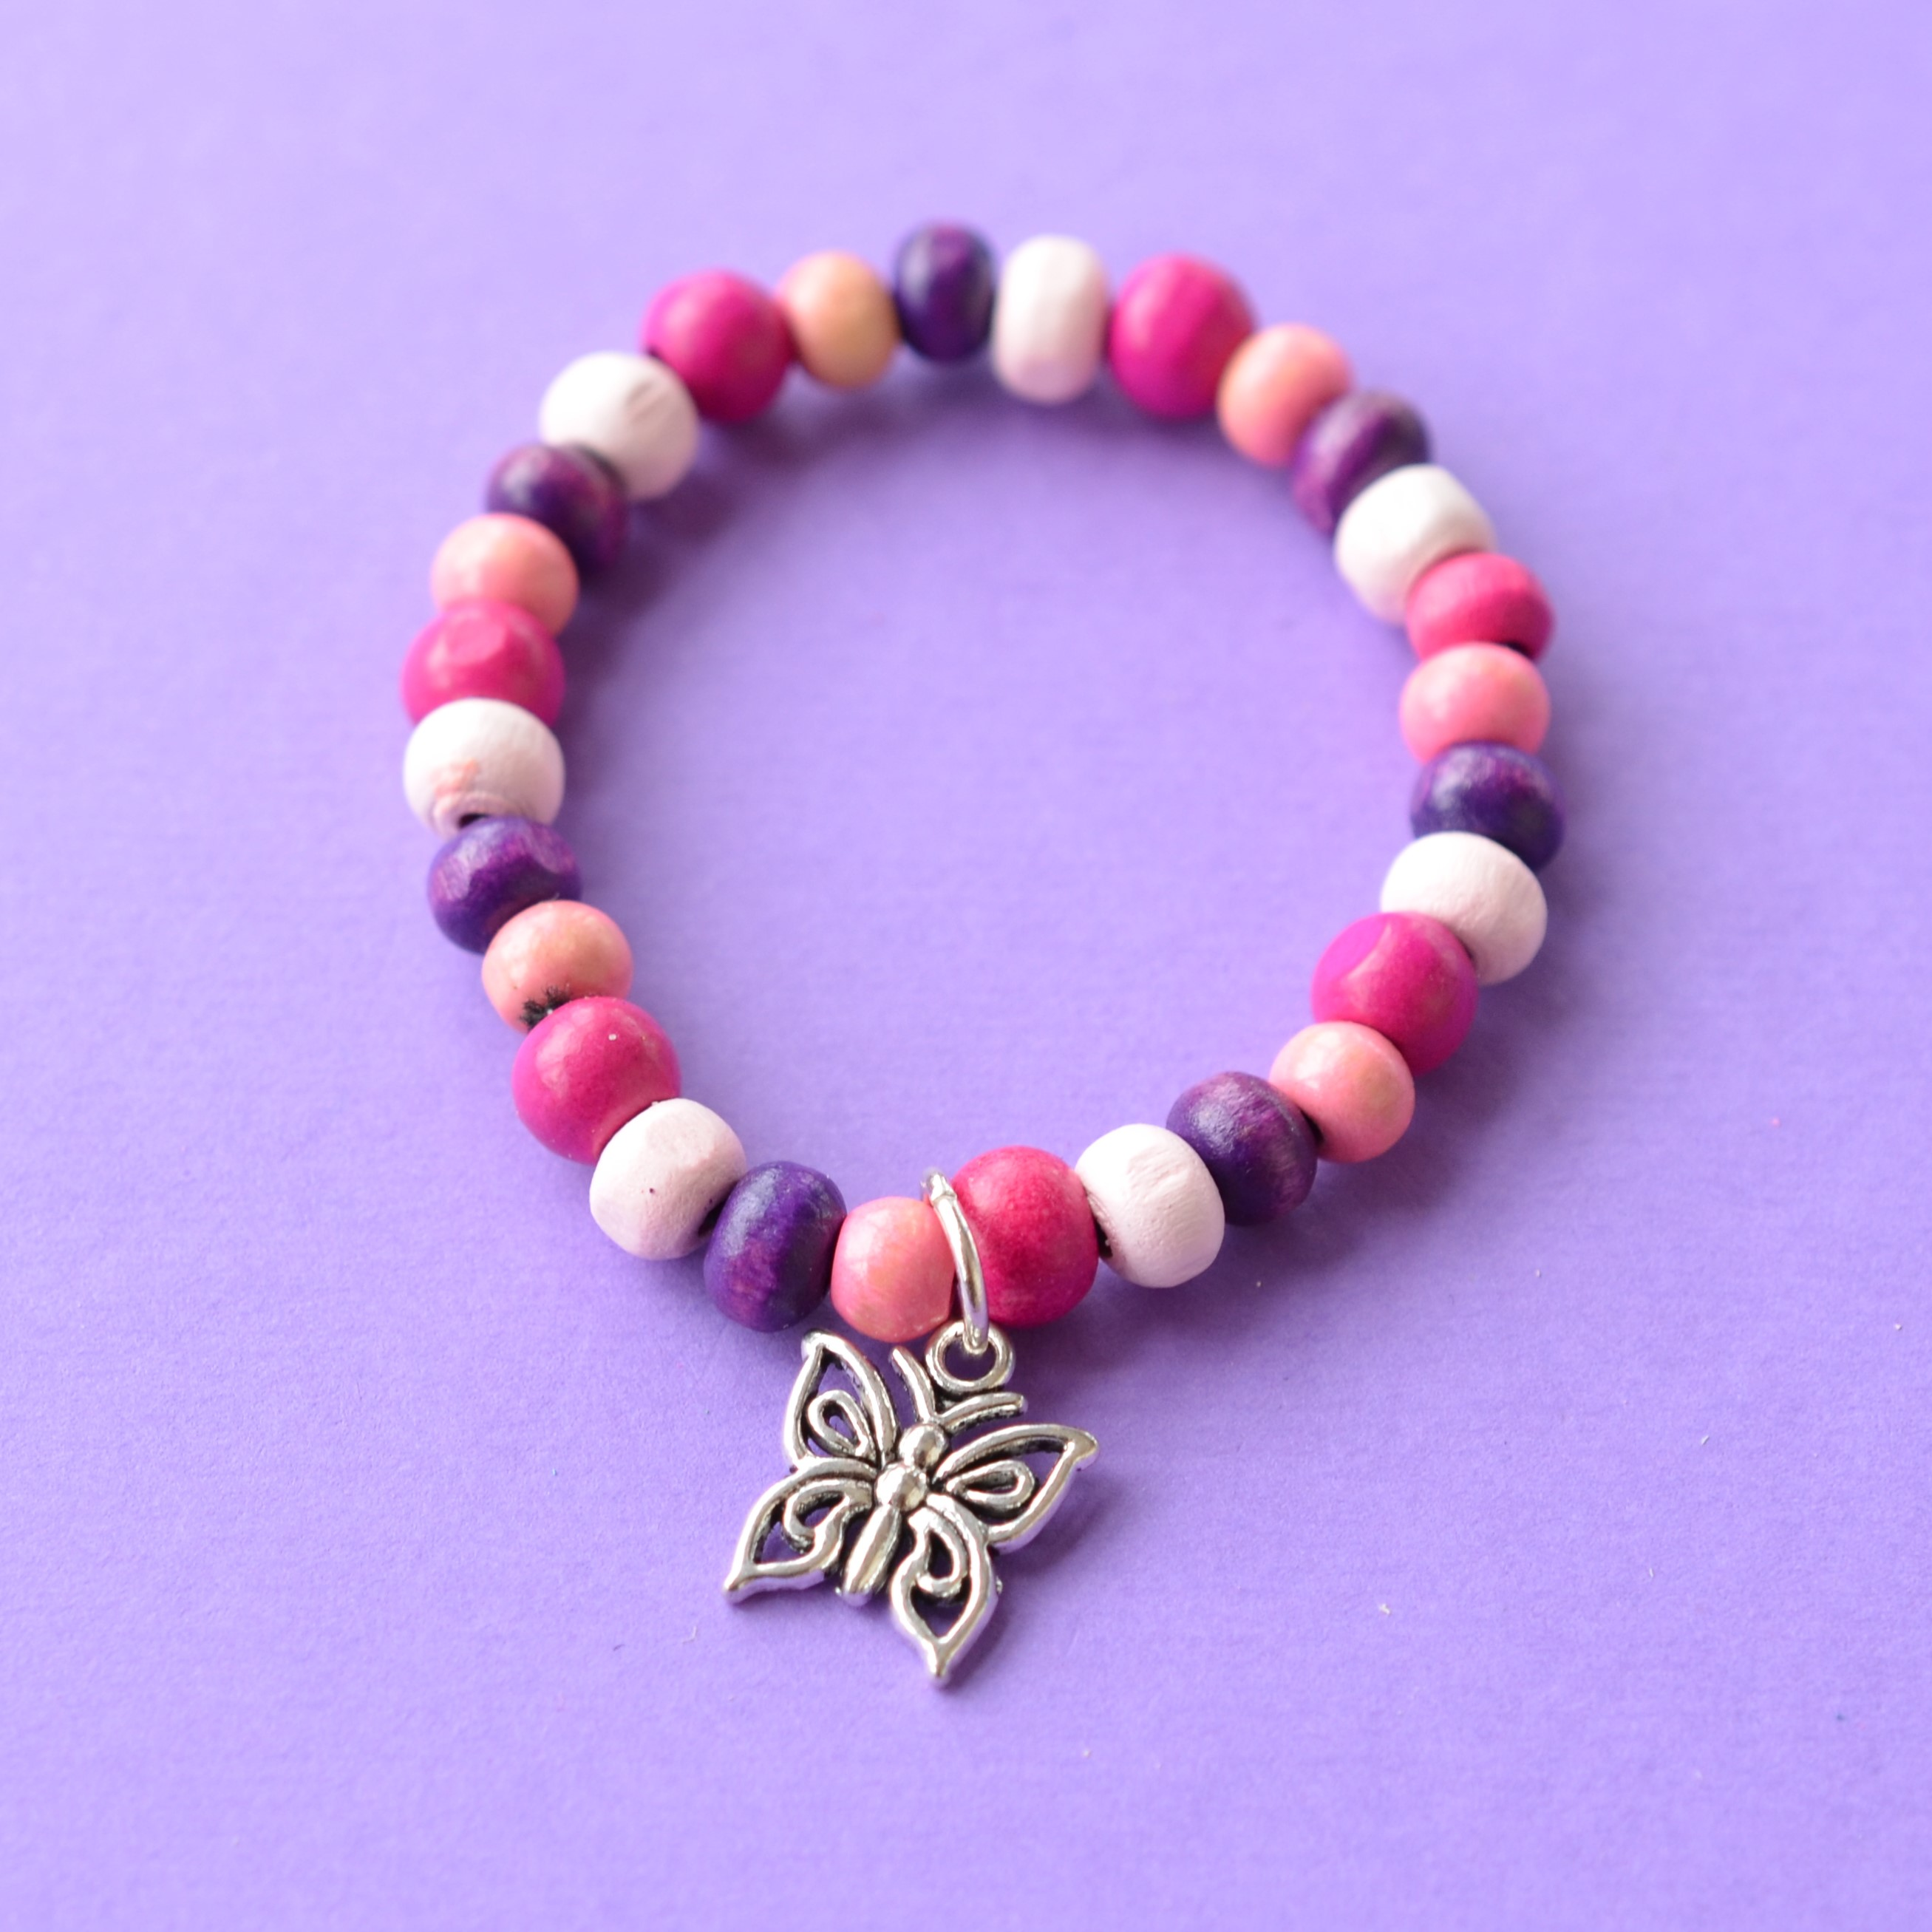 Butterfly Colourful Child's Wooden Bead Charm Bracelet